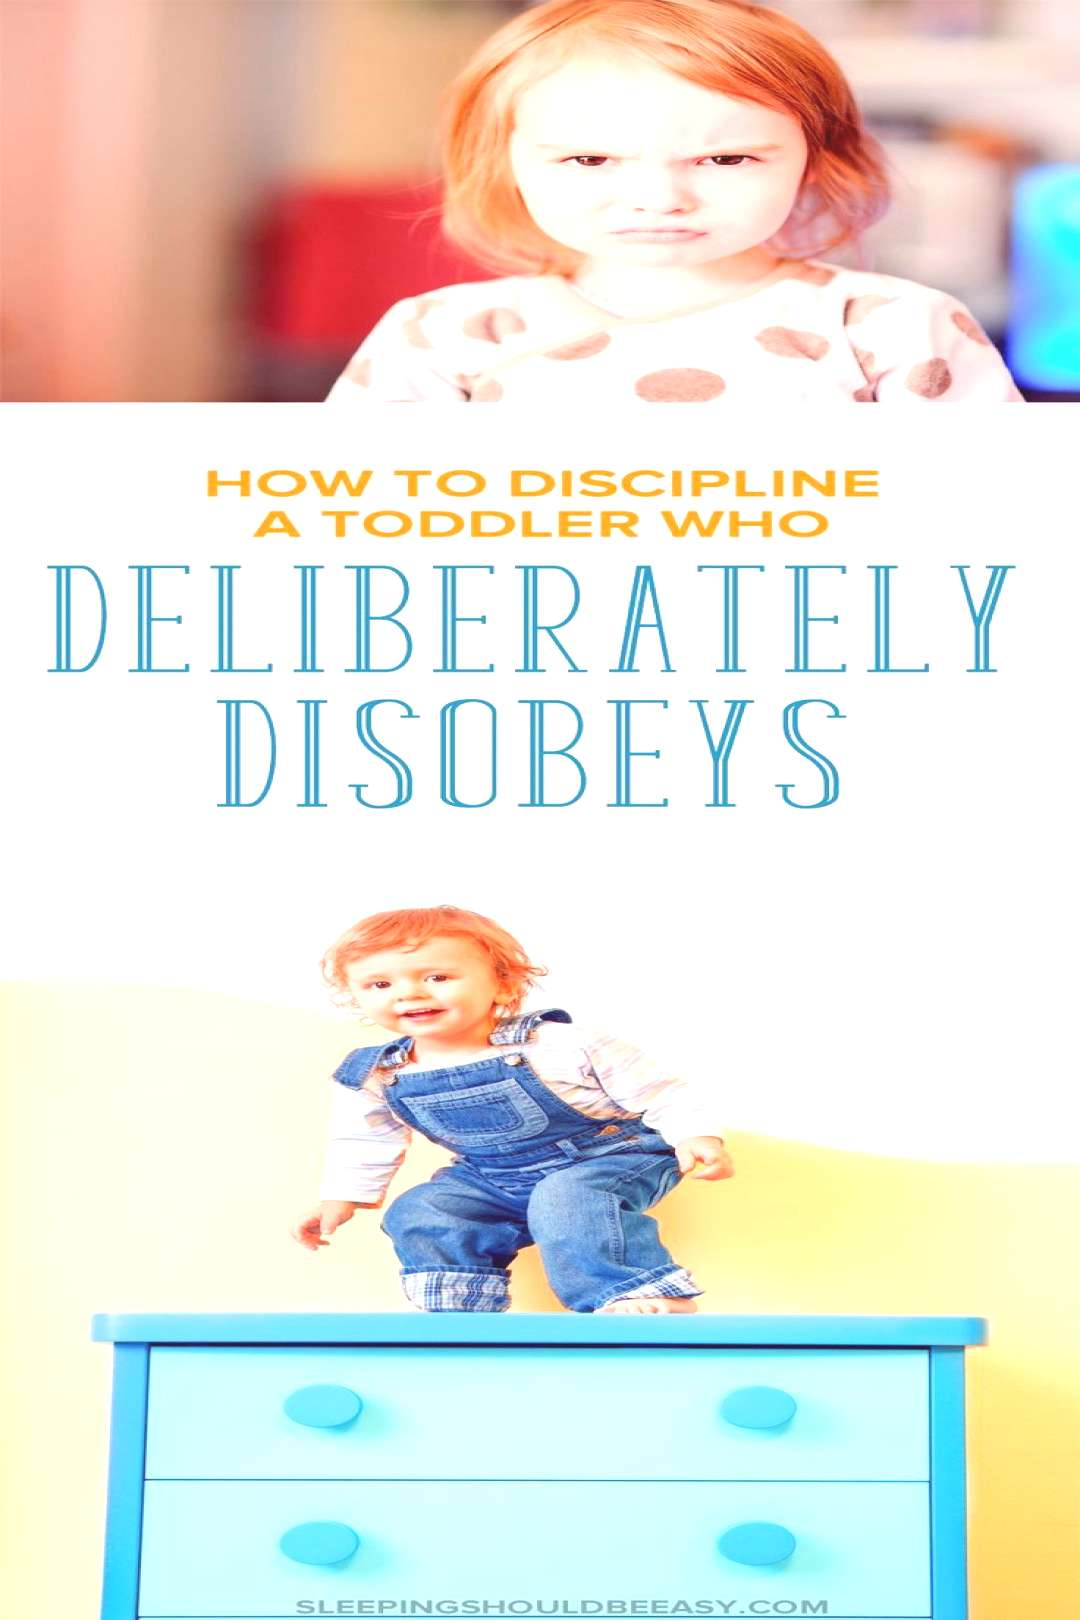 Actionable tips on how to discipline your toddler when he or she deliberately disobeys. How do you